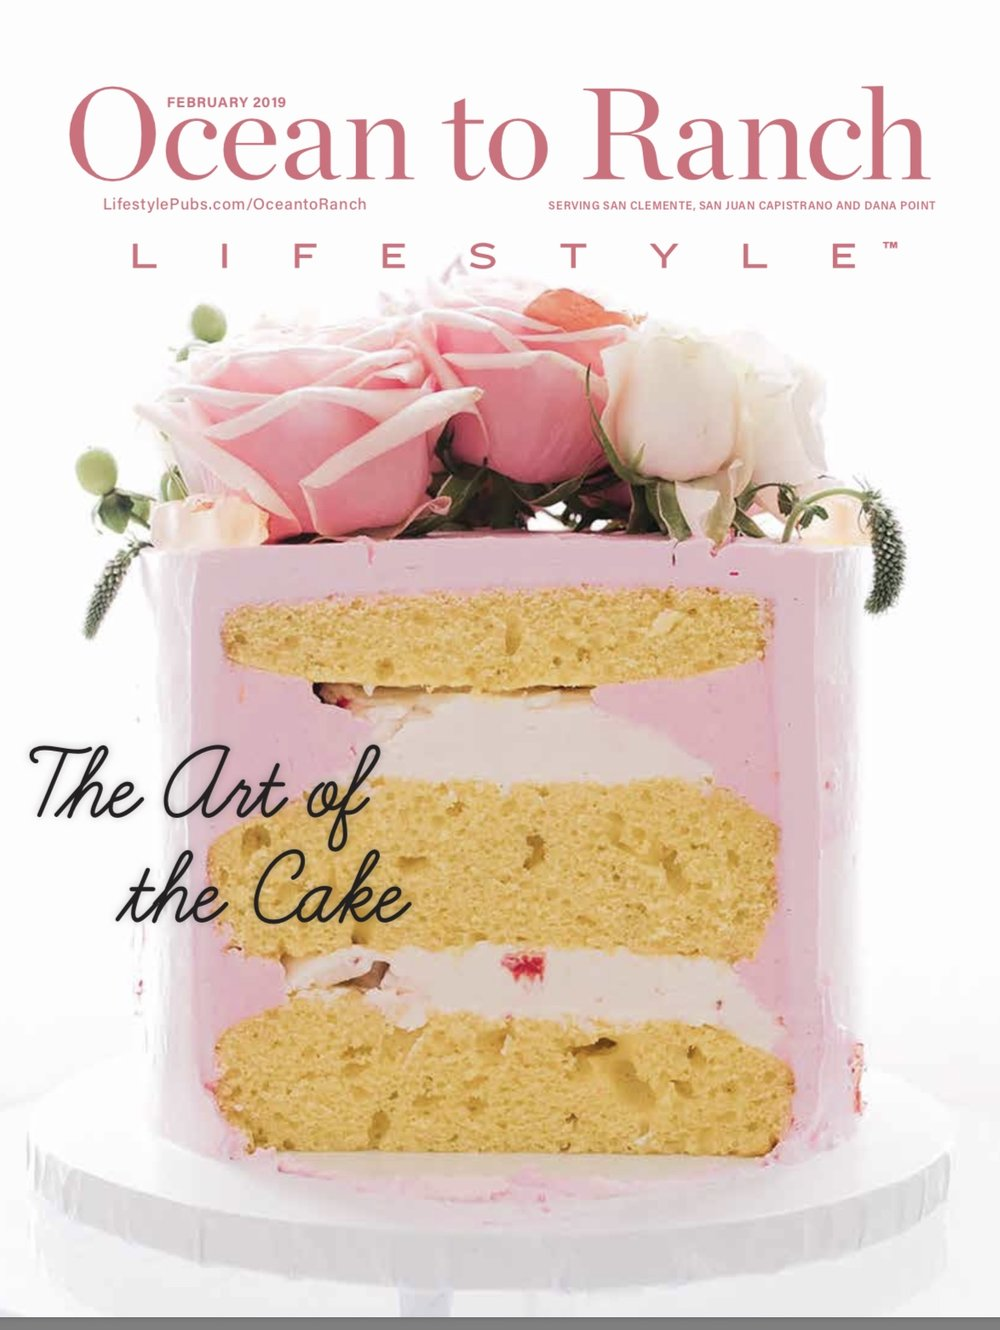 Confectious Pastry Shop Cake on Ocean to Ranch Magazine Cover